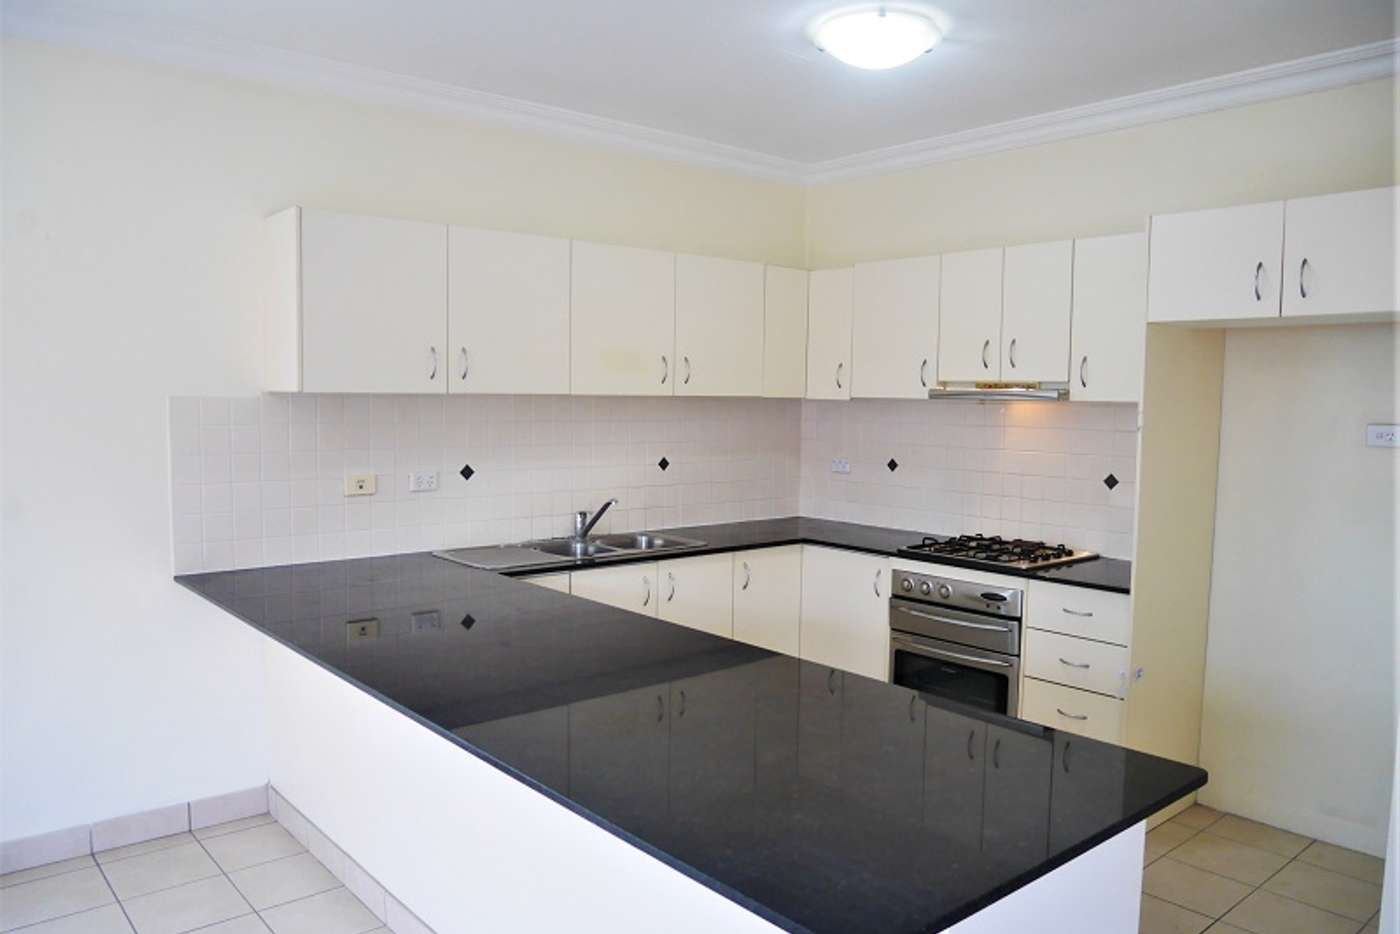 Main view of Homely apartment listing, 5/72 Marsden Street, Parramatta NSW 2150